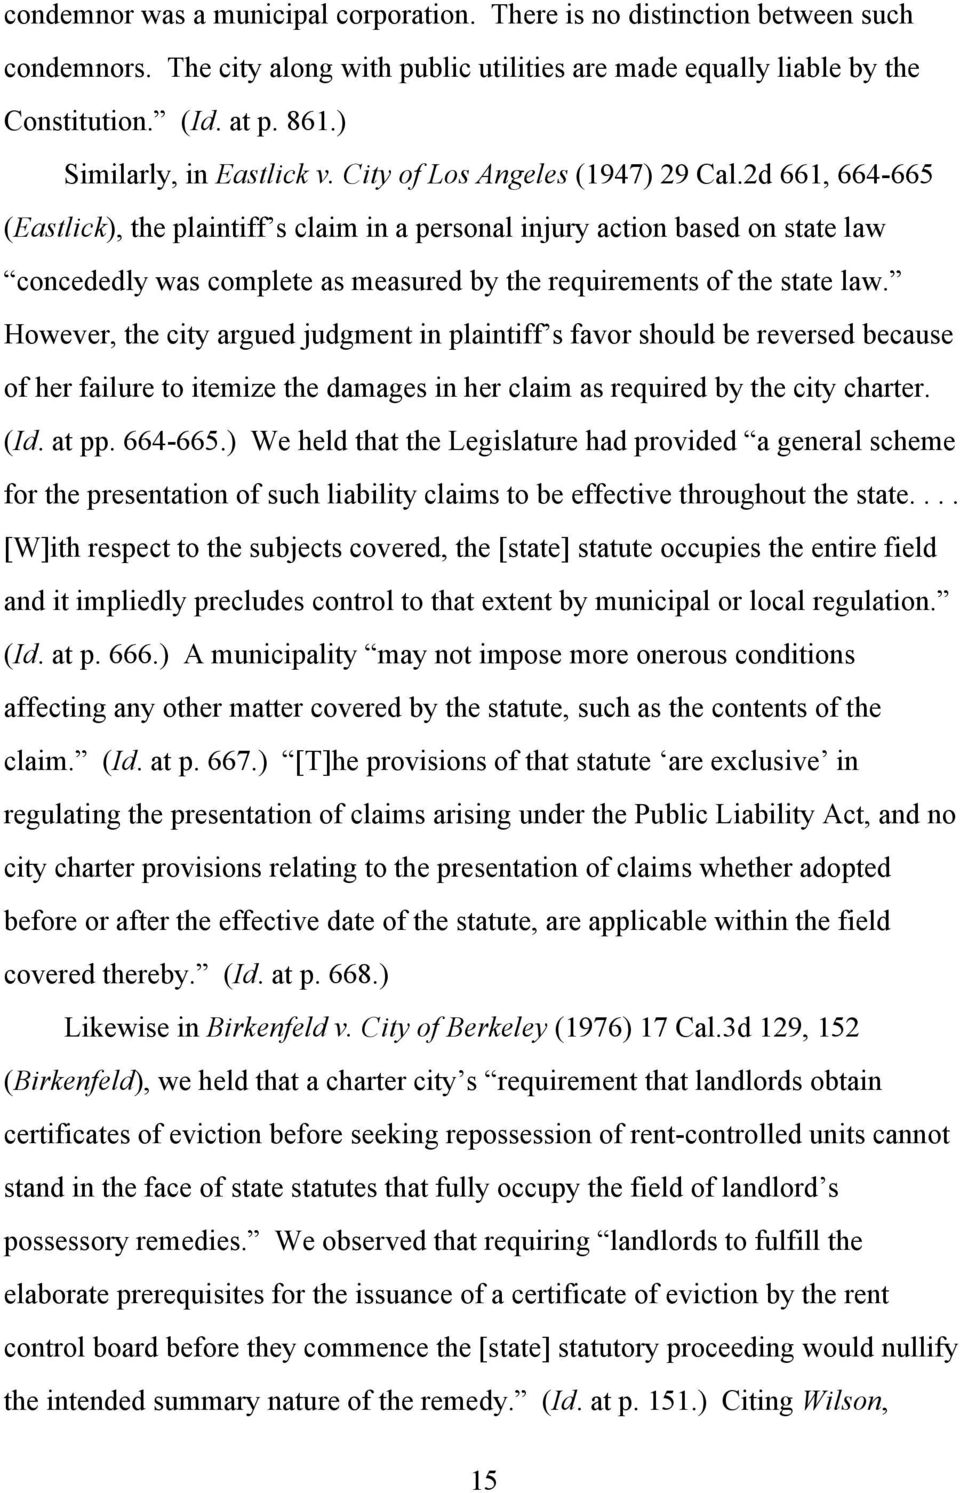 2d 661, 664-665 (Eastlick), the plaintiff s claim in a personal injury action based on state law concededly was complete as measured by the requirements of the state law.